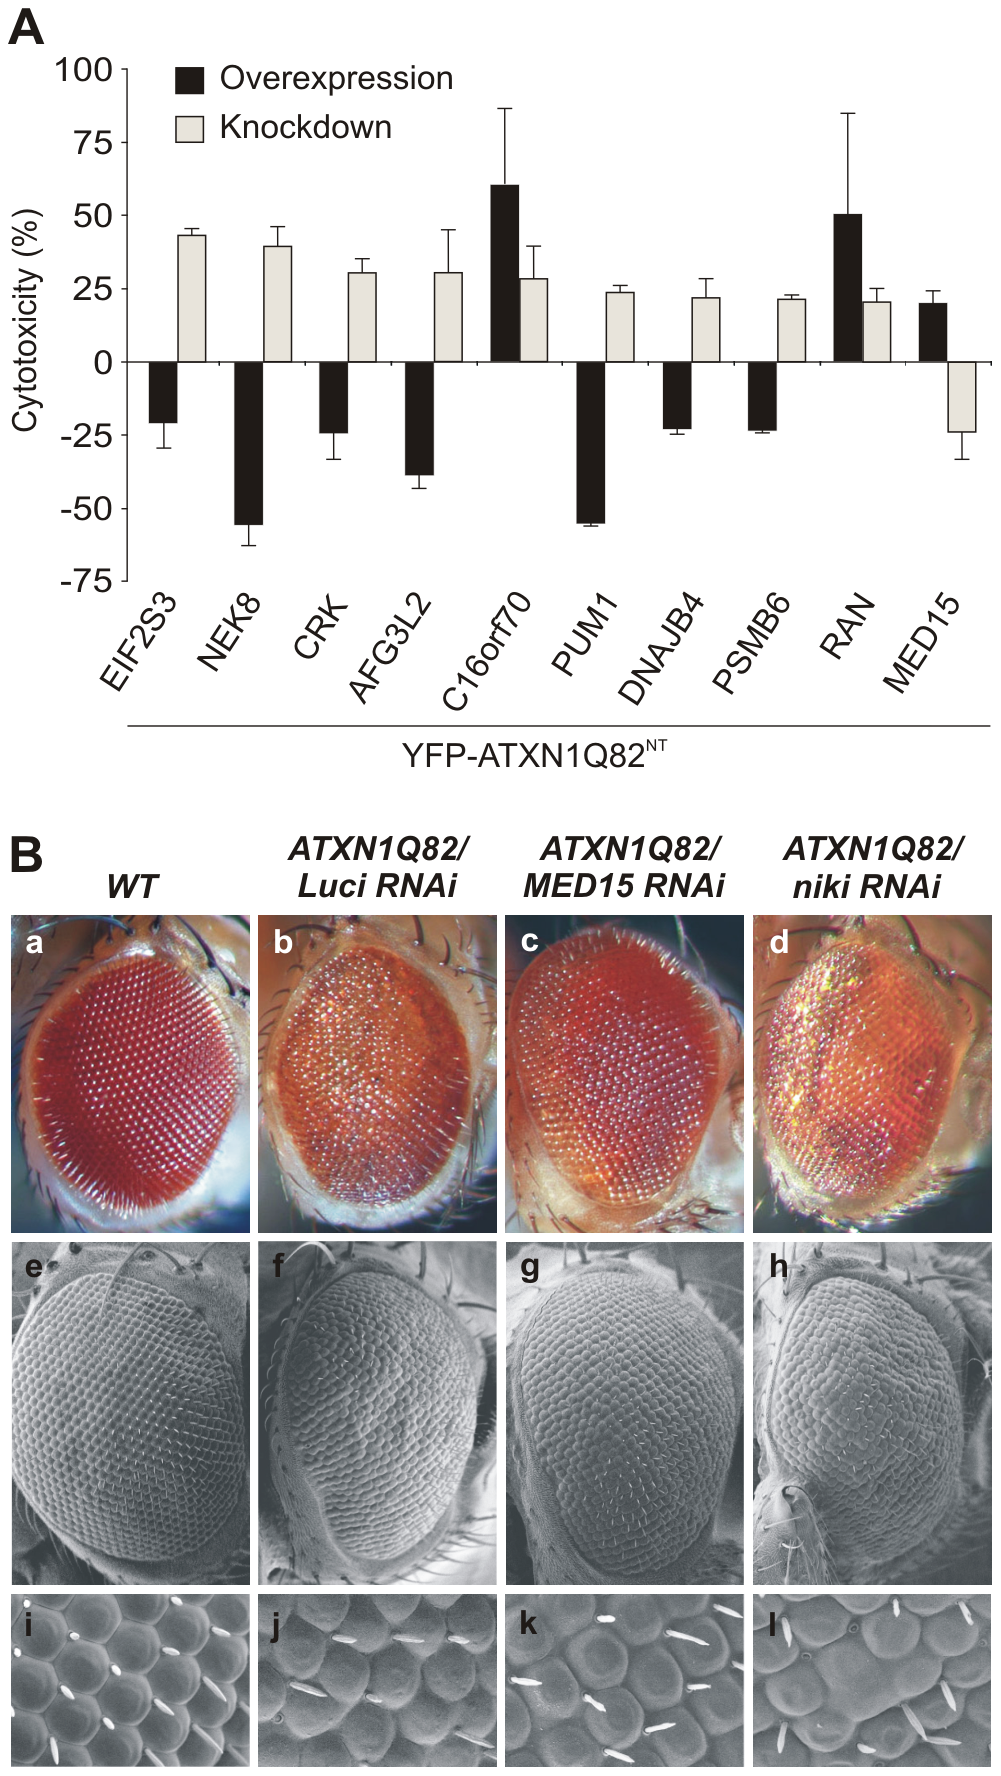 Reduced levels of modifier proteins influence the cytotoxicity of pathogenic ATXN1 in model systems.